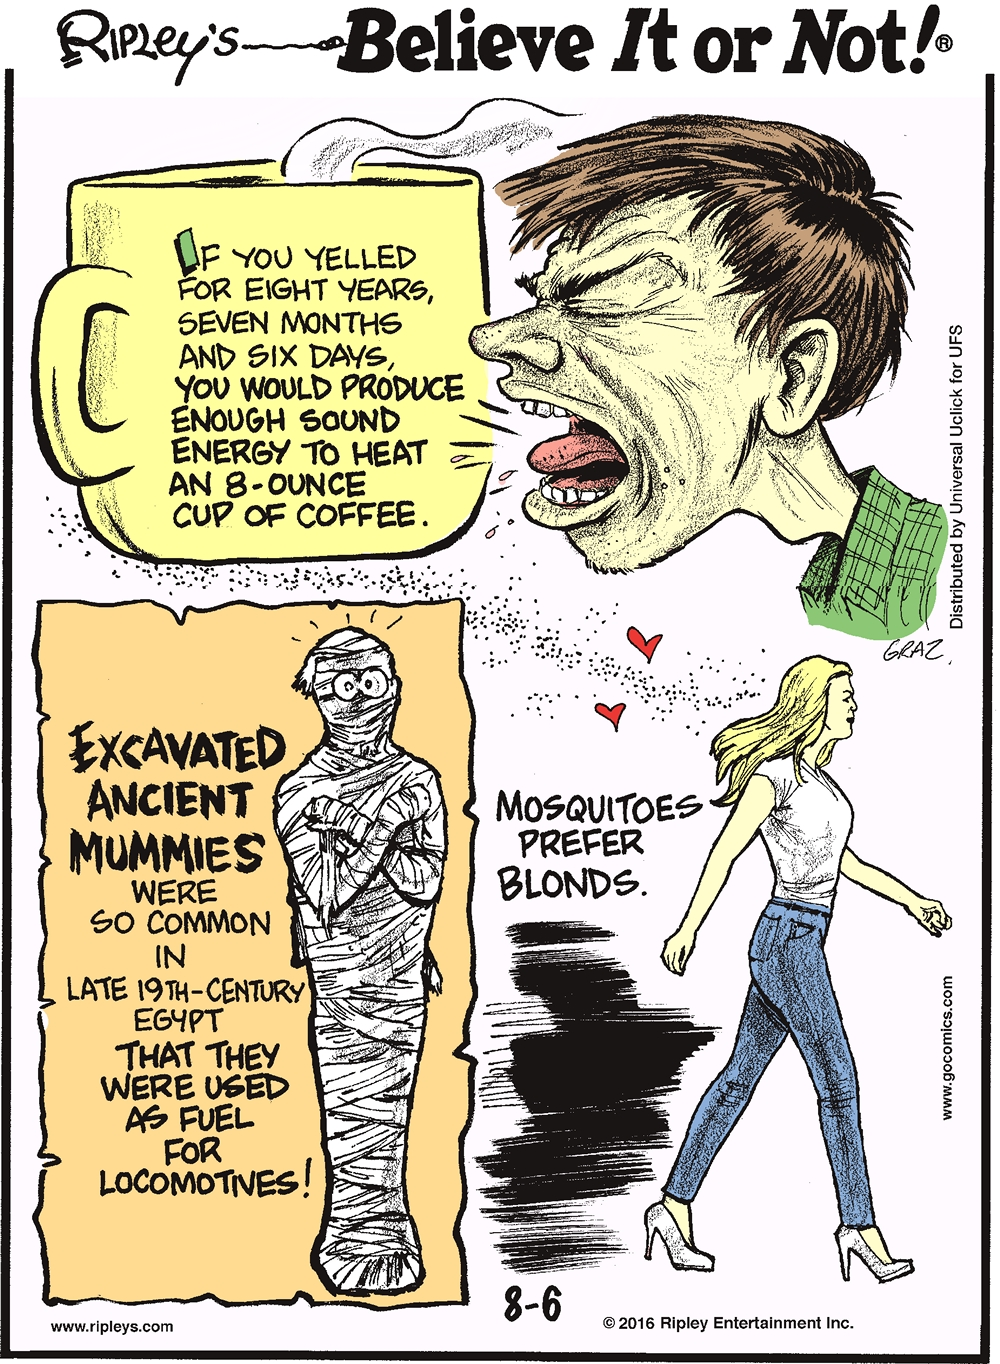 If you yelled for eight years, seven months, and six days, you would produce enough sound energy to heat an 8-ounce cup of coffee. -------------------- Excavated ancient mummies were so common in late 19th-century Egypt that they were used as fuel for locomotives! -------------------- Mosquitoes prefer blonds.